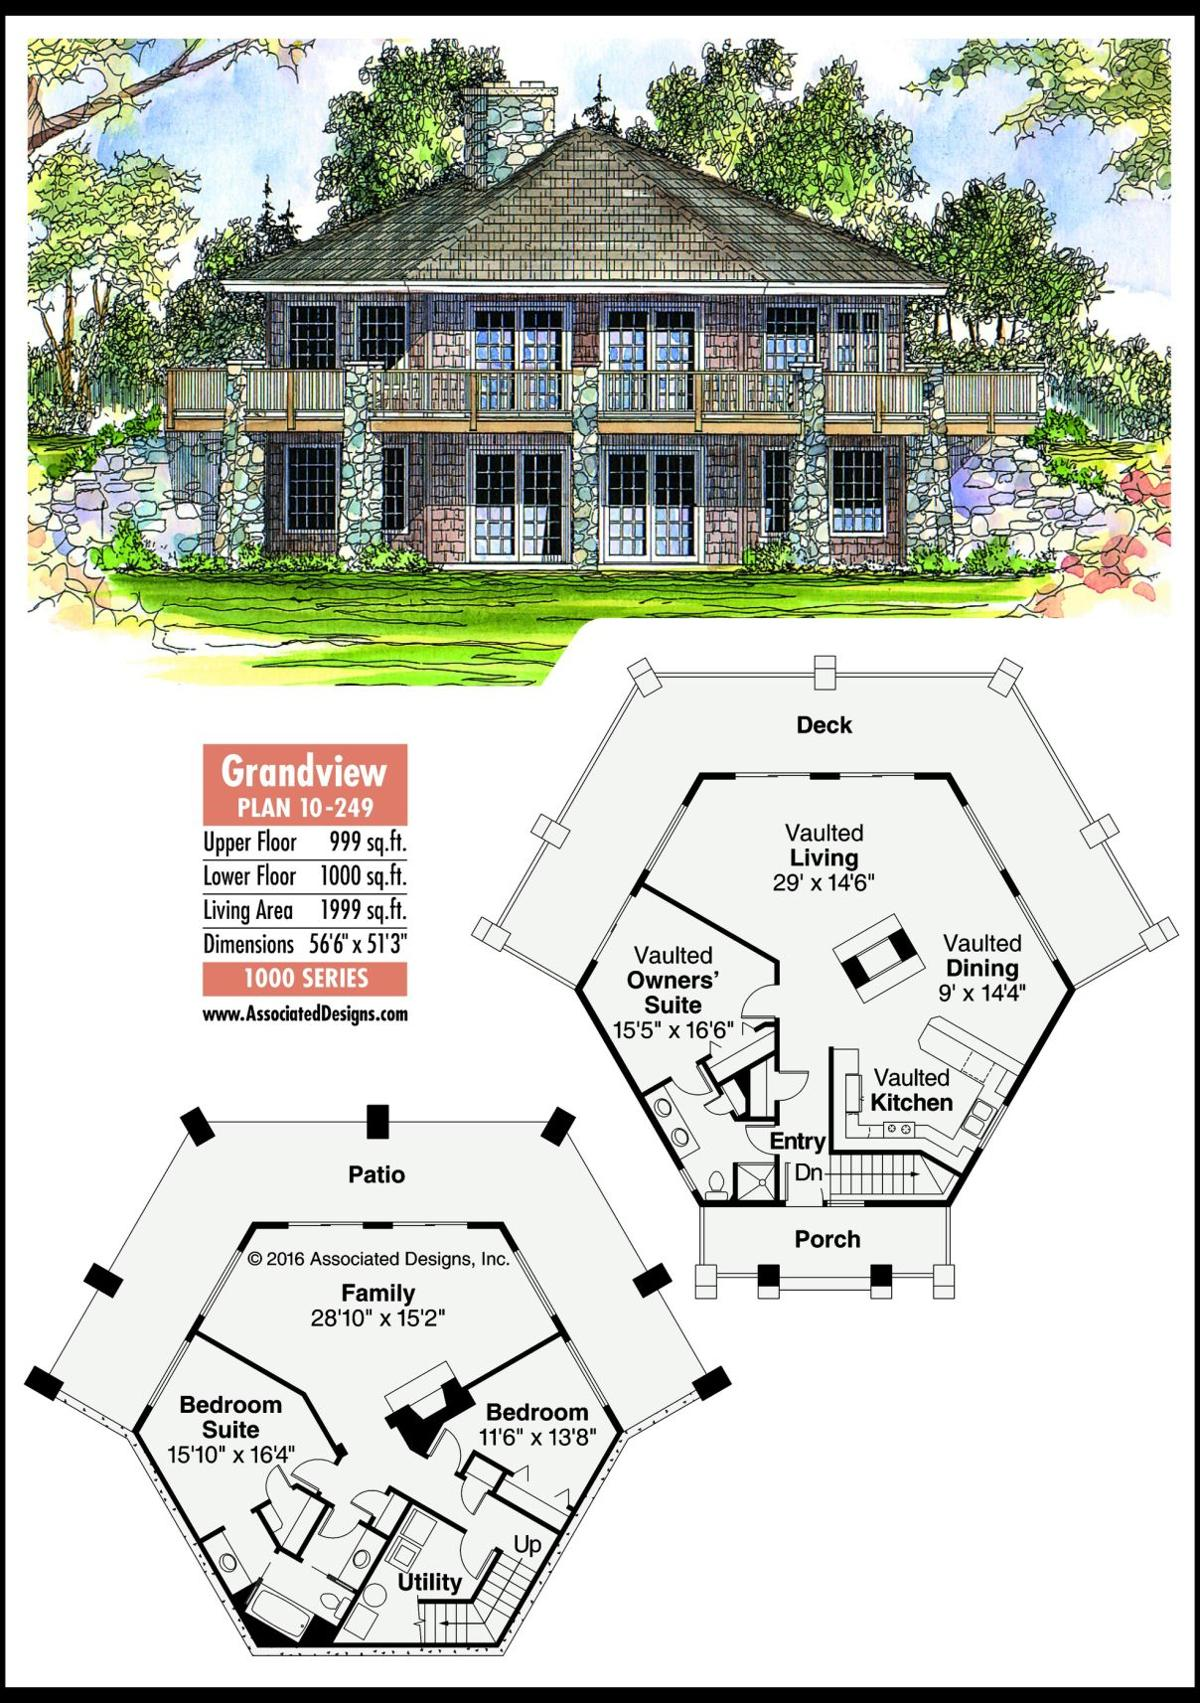 This week's house plan Grandview 10-249